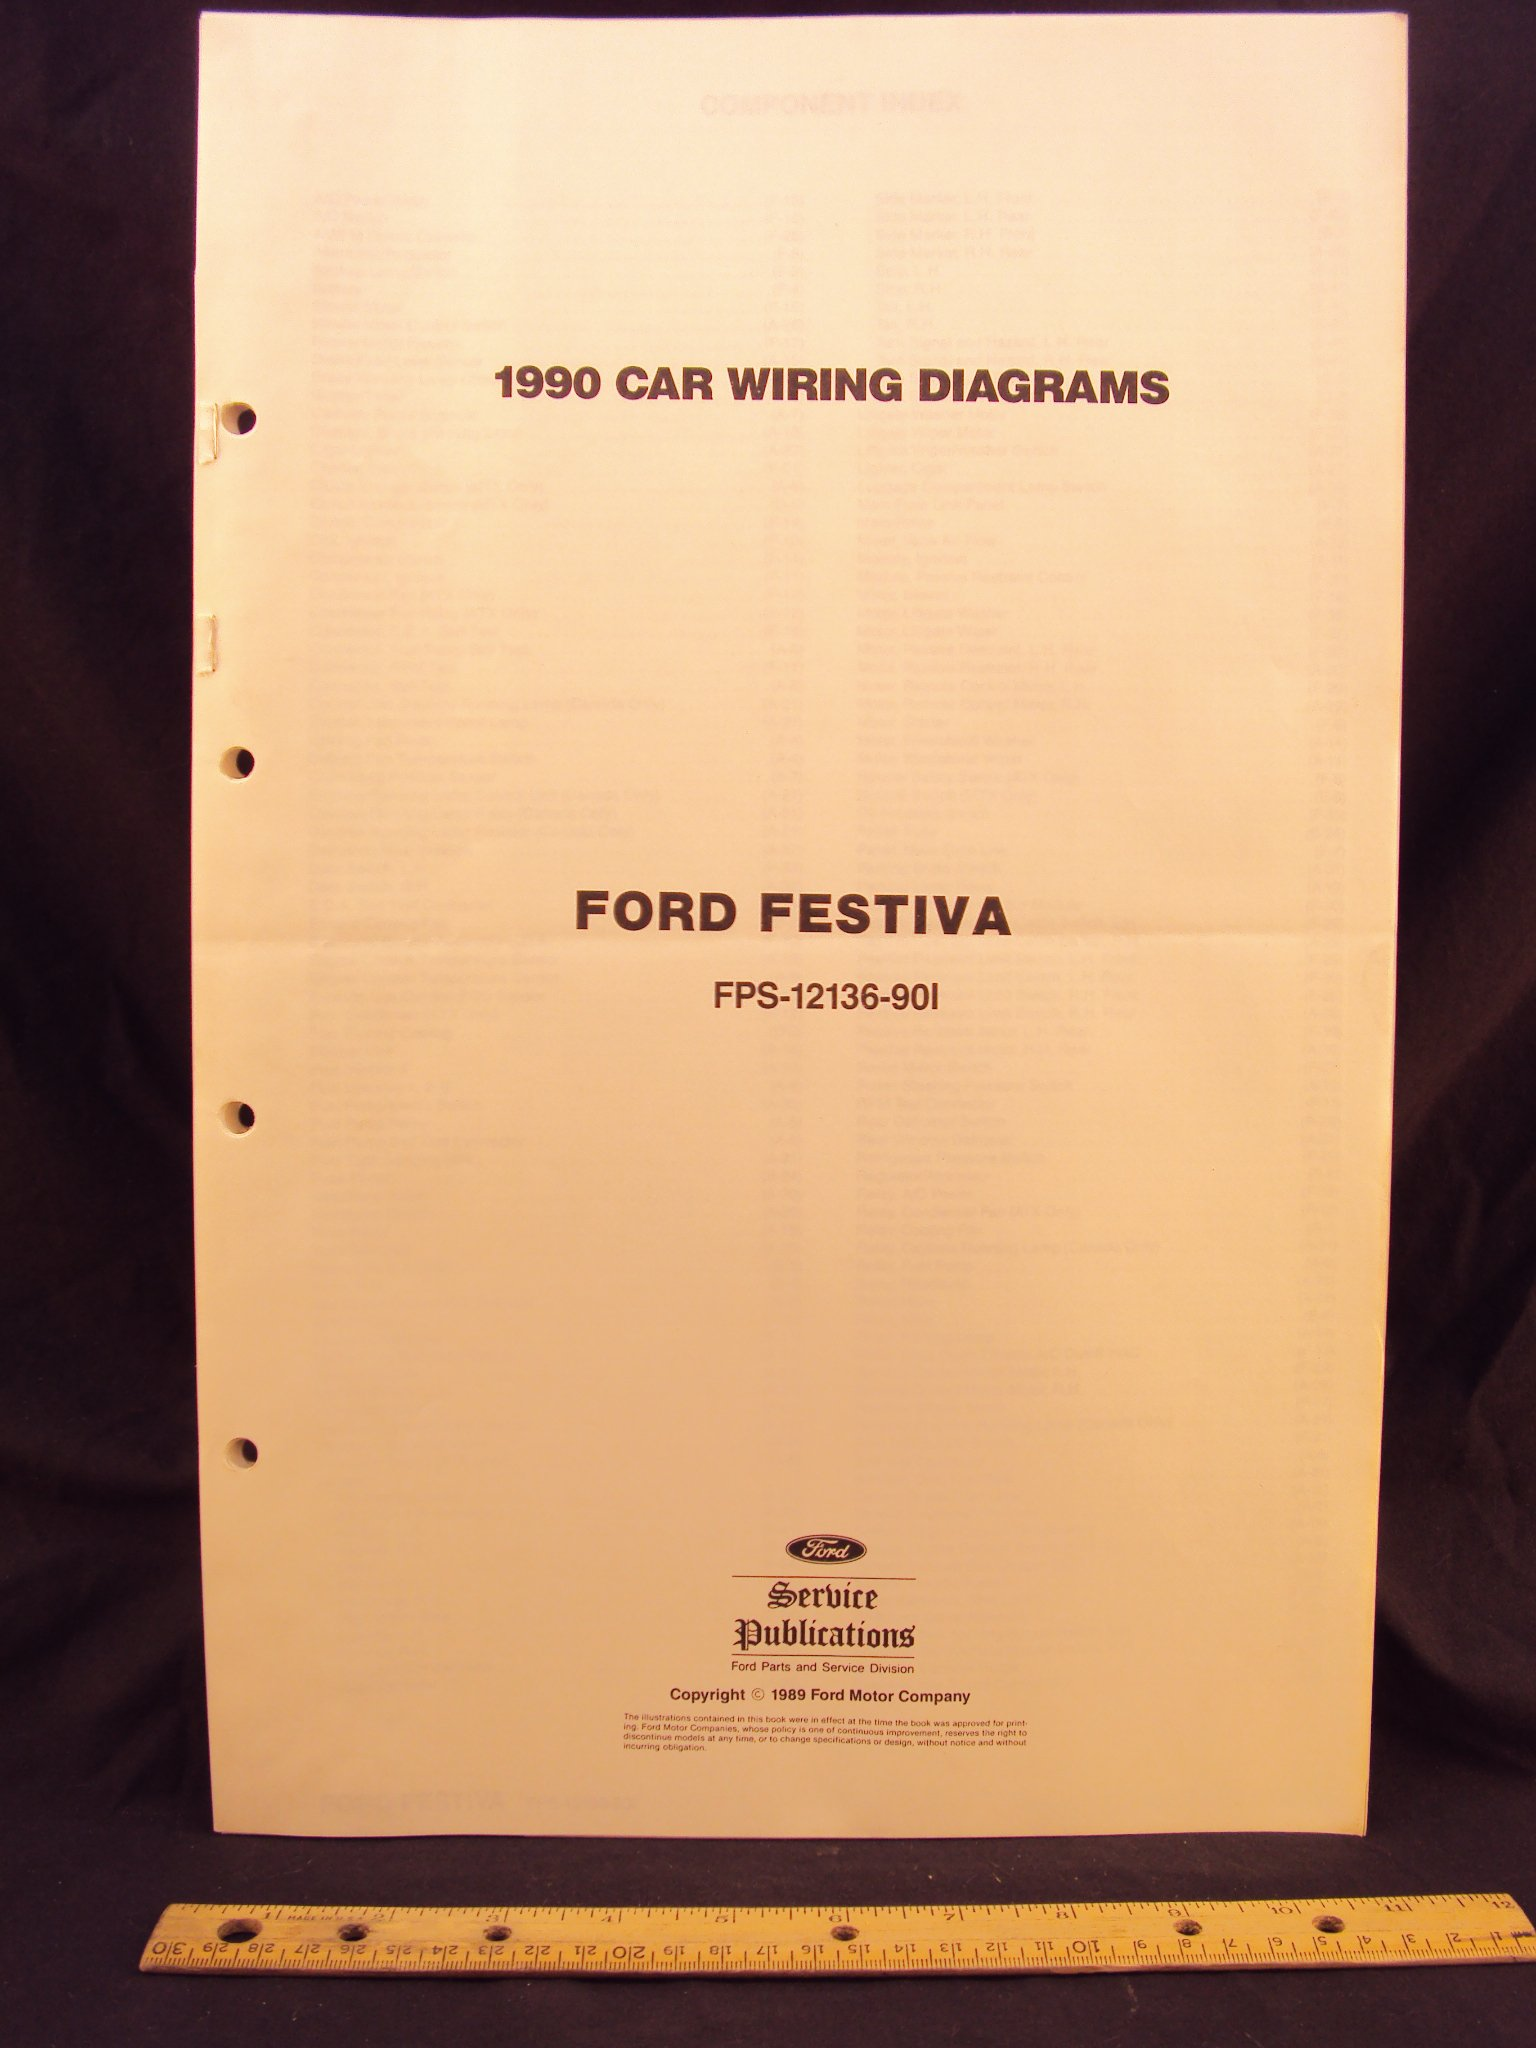 1990 ford festiva electrical wiring diagrams schematics ford rh amazon com 1991  Ford Festiva 1993 Ford Festiva